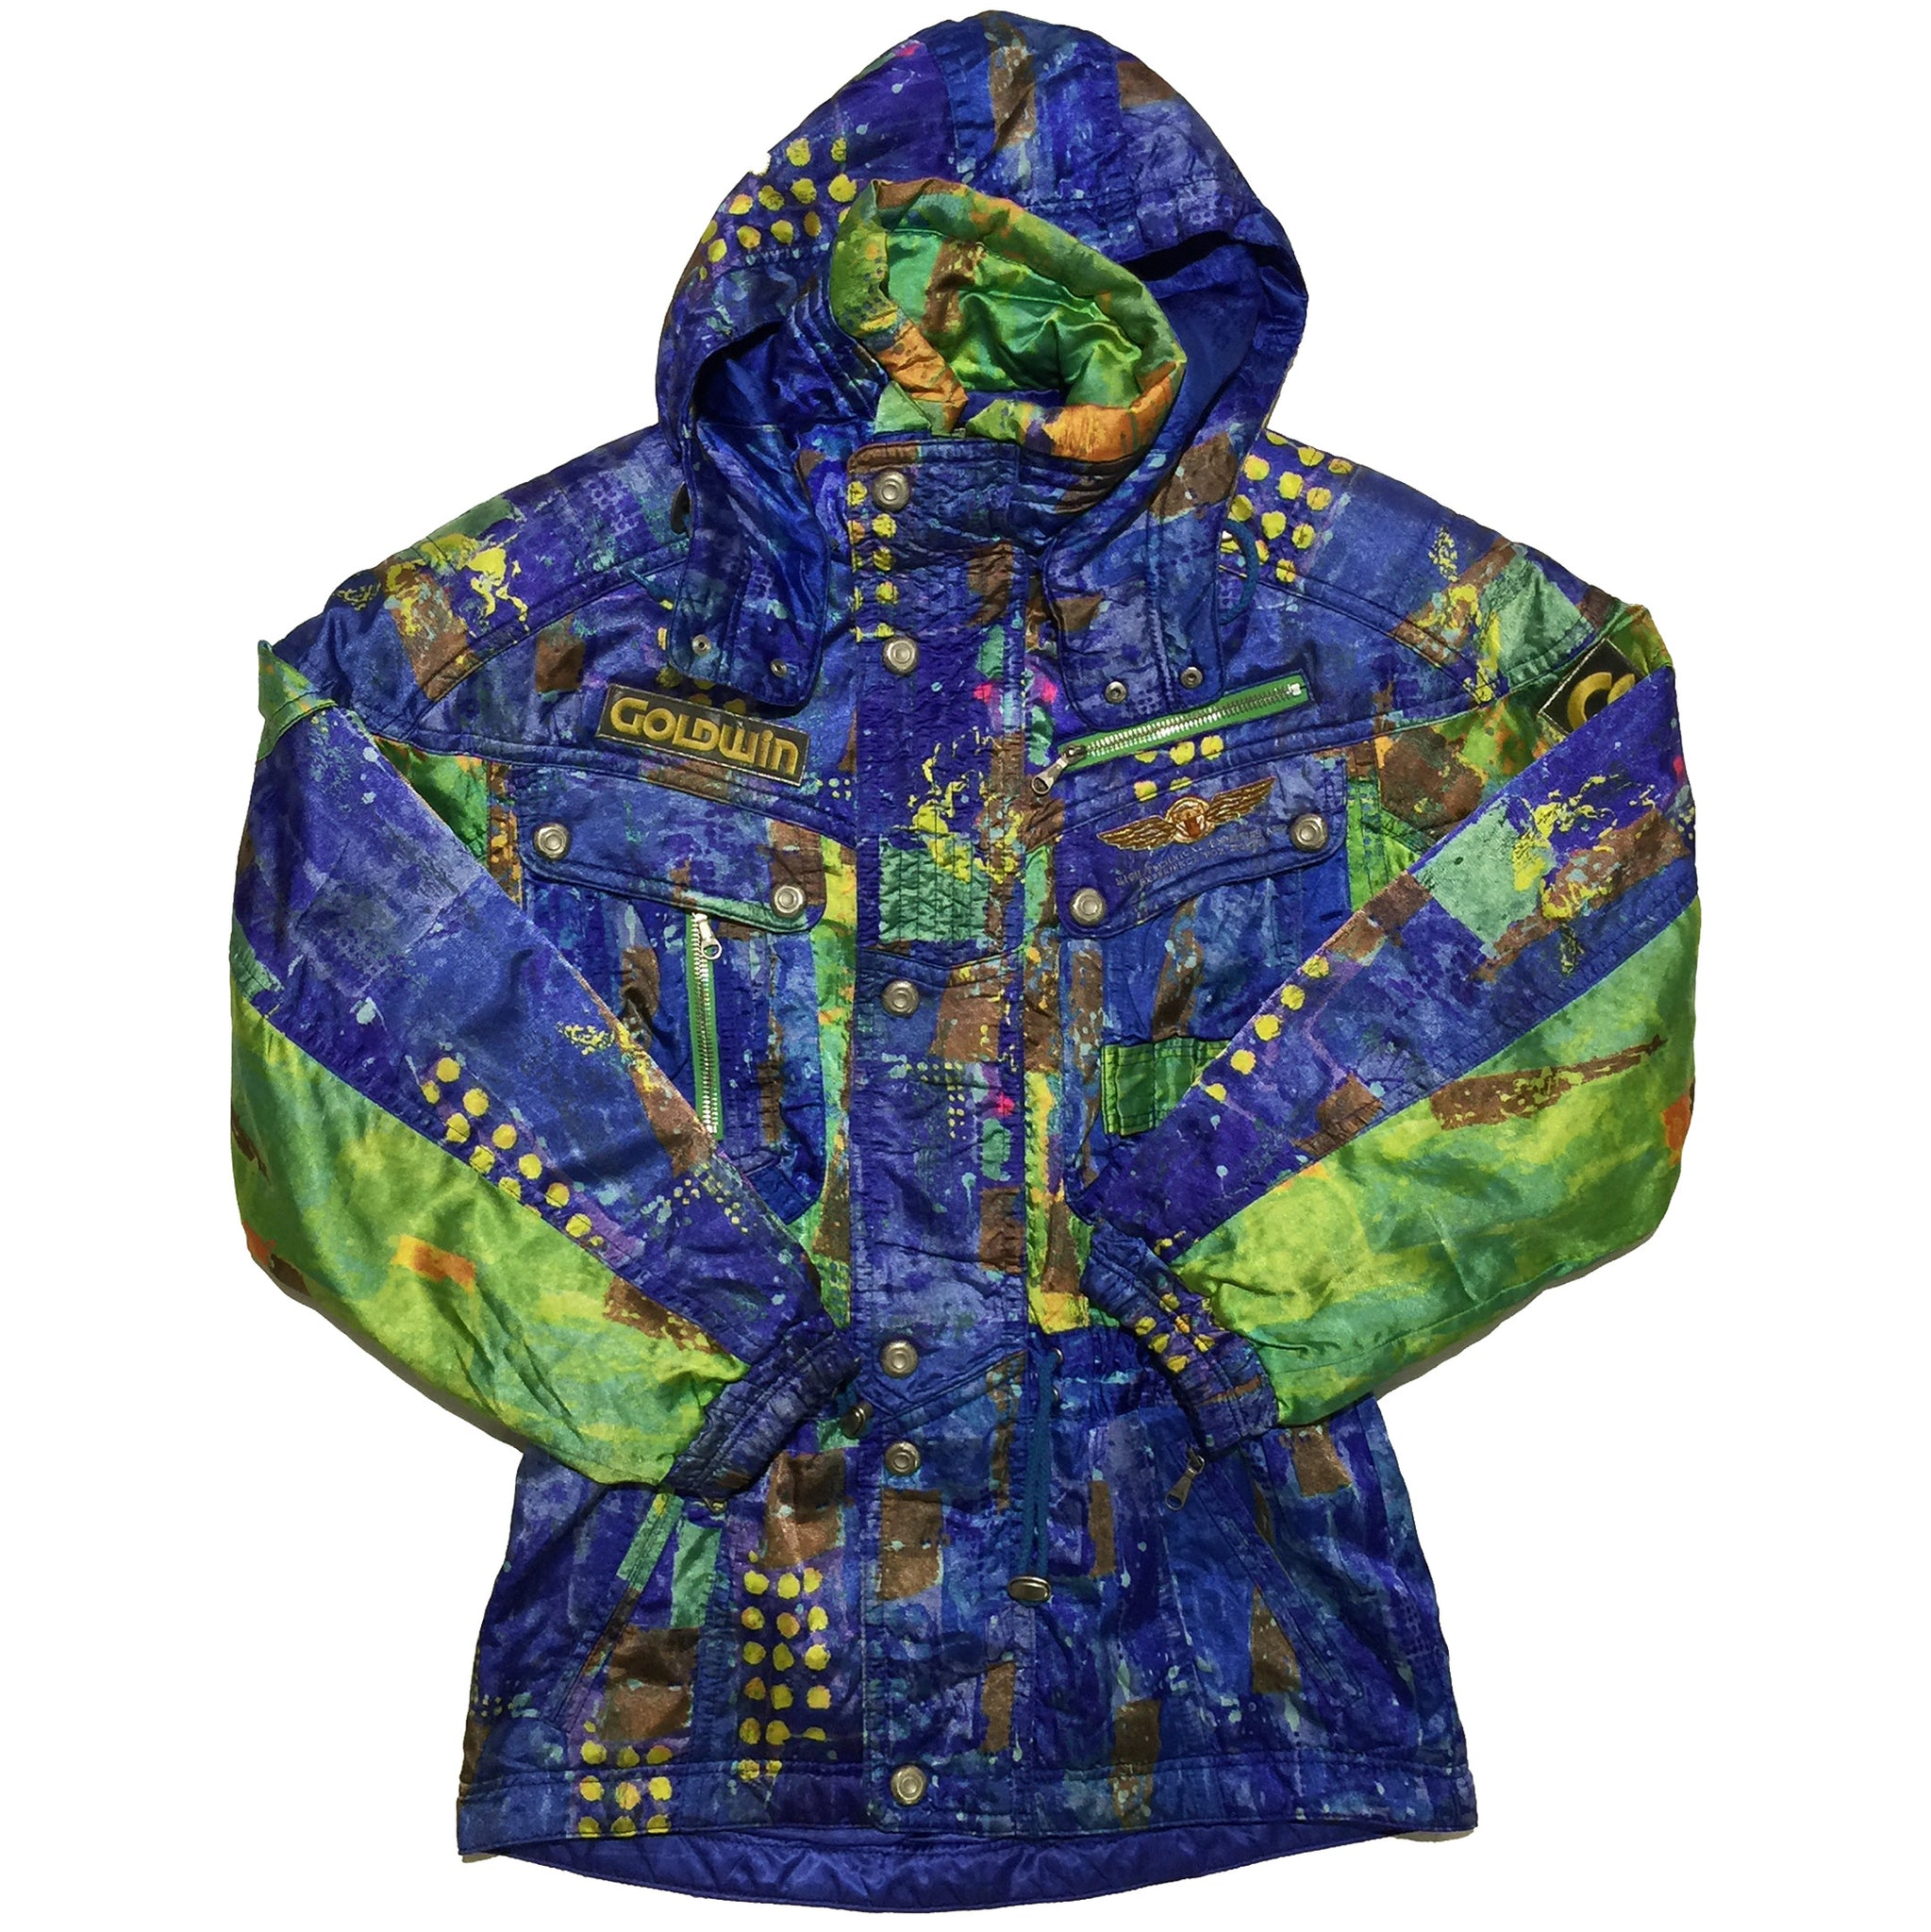 Goldwin Blue, Green, Yellow Dot Pattern Jacket